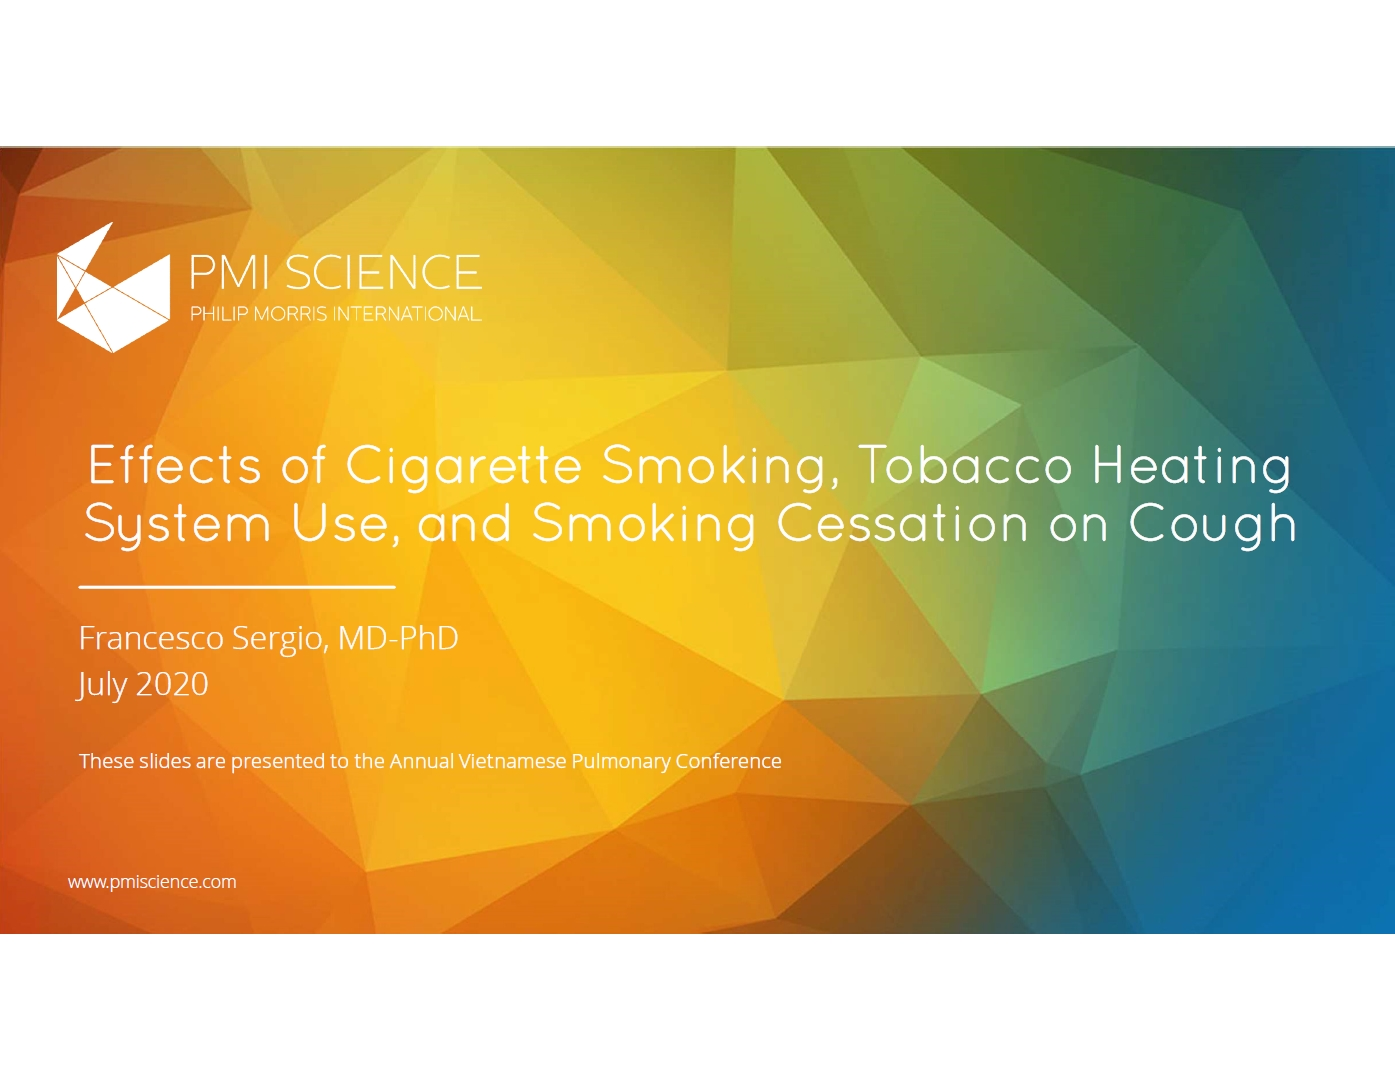 Effects of cigarette smoking tobacco heating system use and smoking cessation on cough